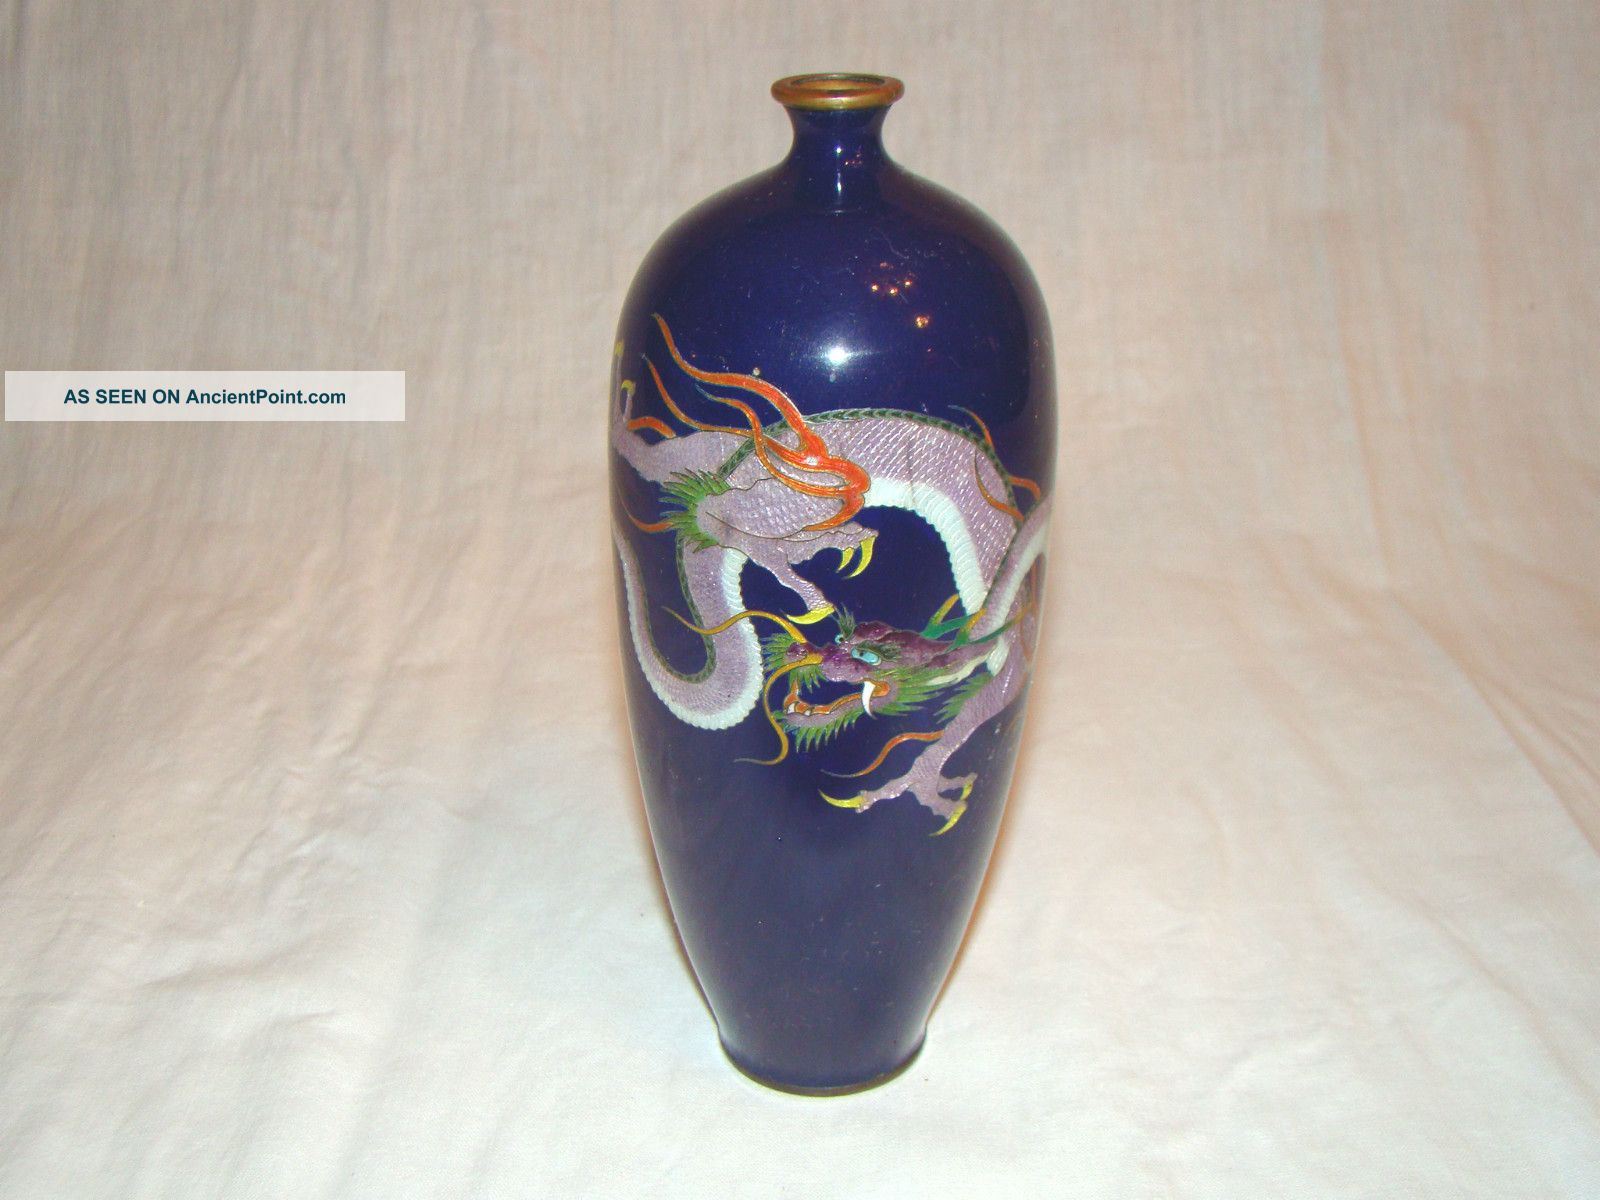 Lot 2 antique meiji period japan japanese cloisonne enamel dragon lot 2 antique meiji period japan japanese cloisonne enamel dragon vase signed reviewsmspy